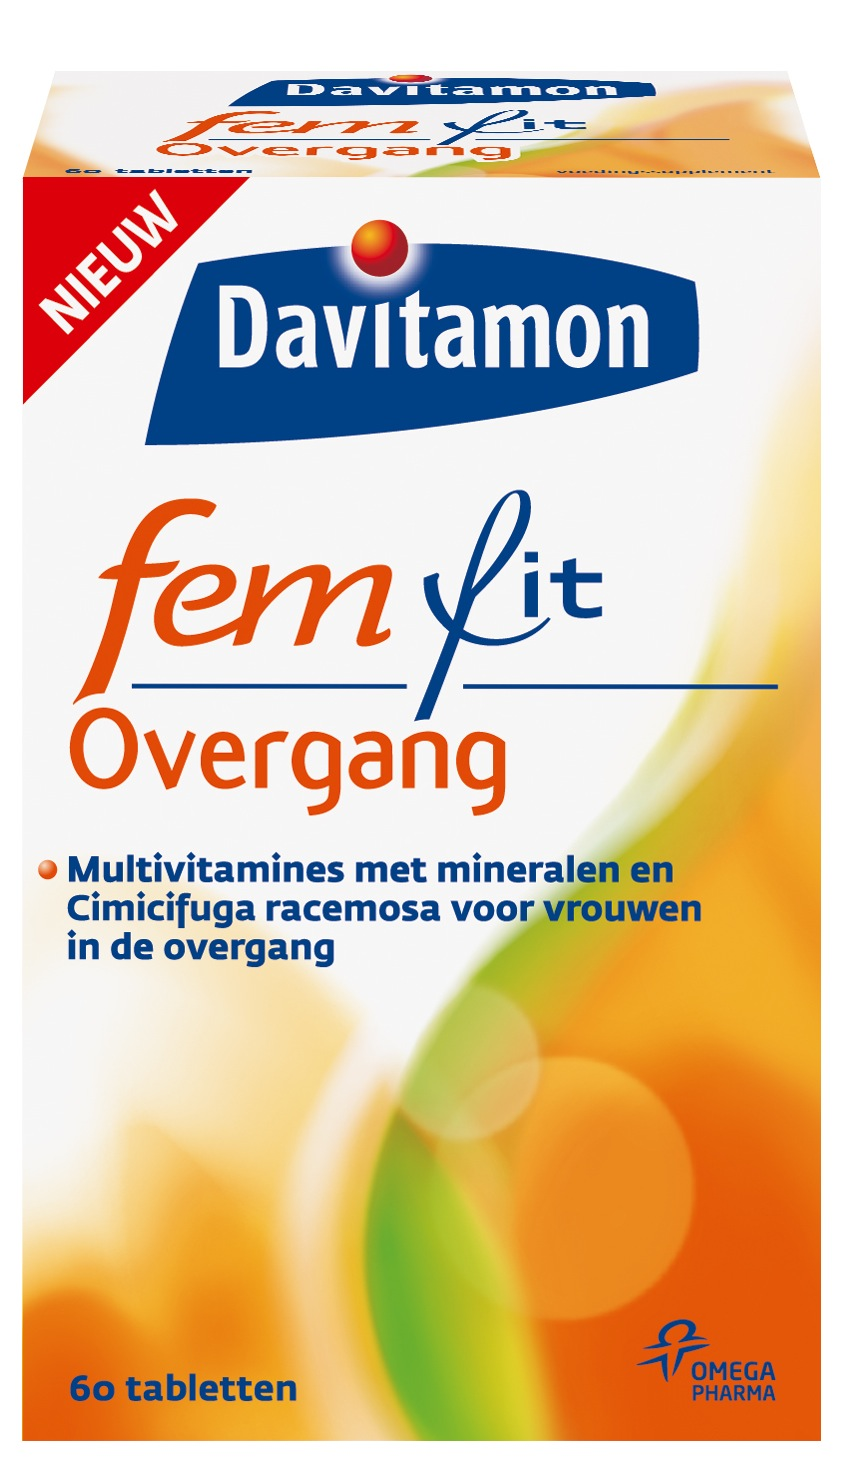 Davitamon Femfit Overgang Multivitaminen - 60 Tabletten